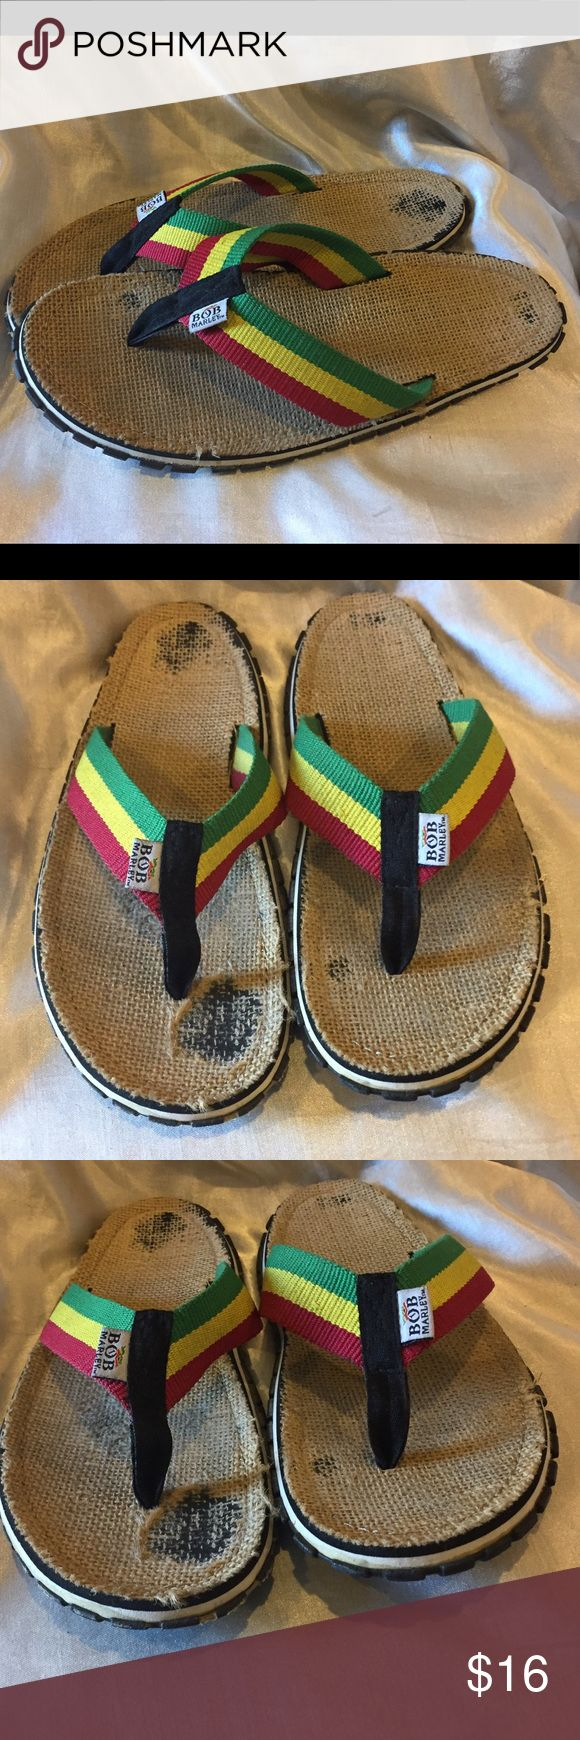 Bob Marley green yellow red flip flops size 10 Bob Marley green yellow red flip flops Classic Earthy look Shoes have been worn looks great on Please see pictures for details of wear Bob Marley Shoes Sandals & Flip-Flops